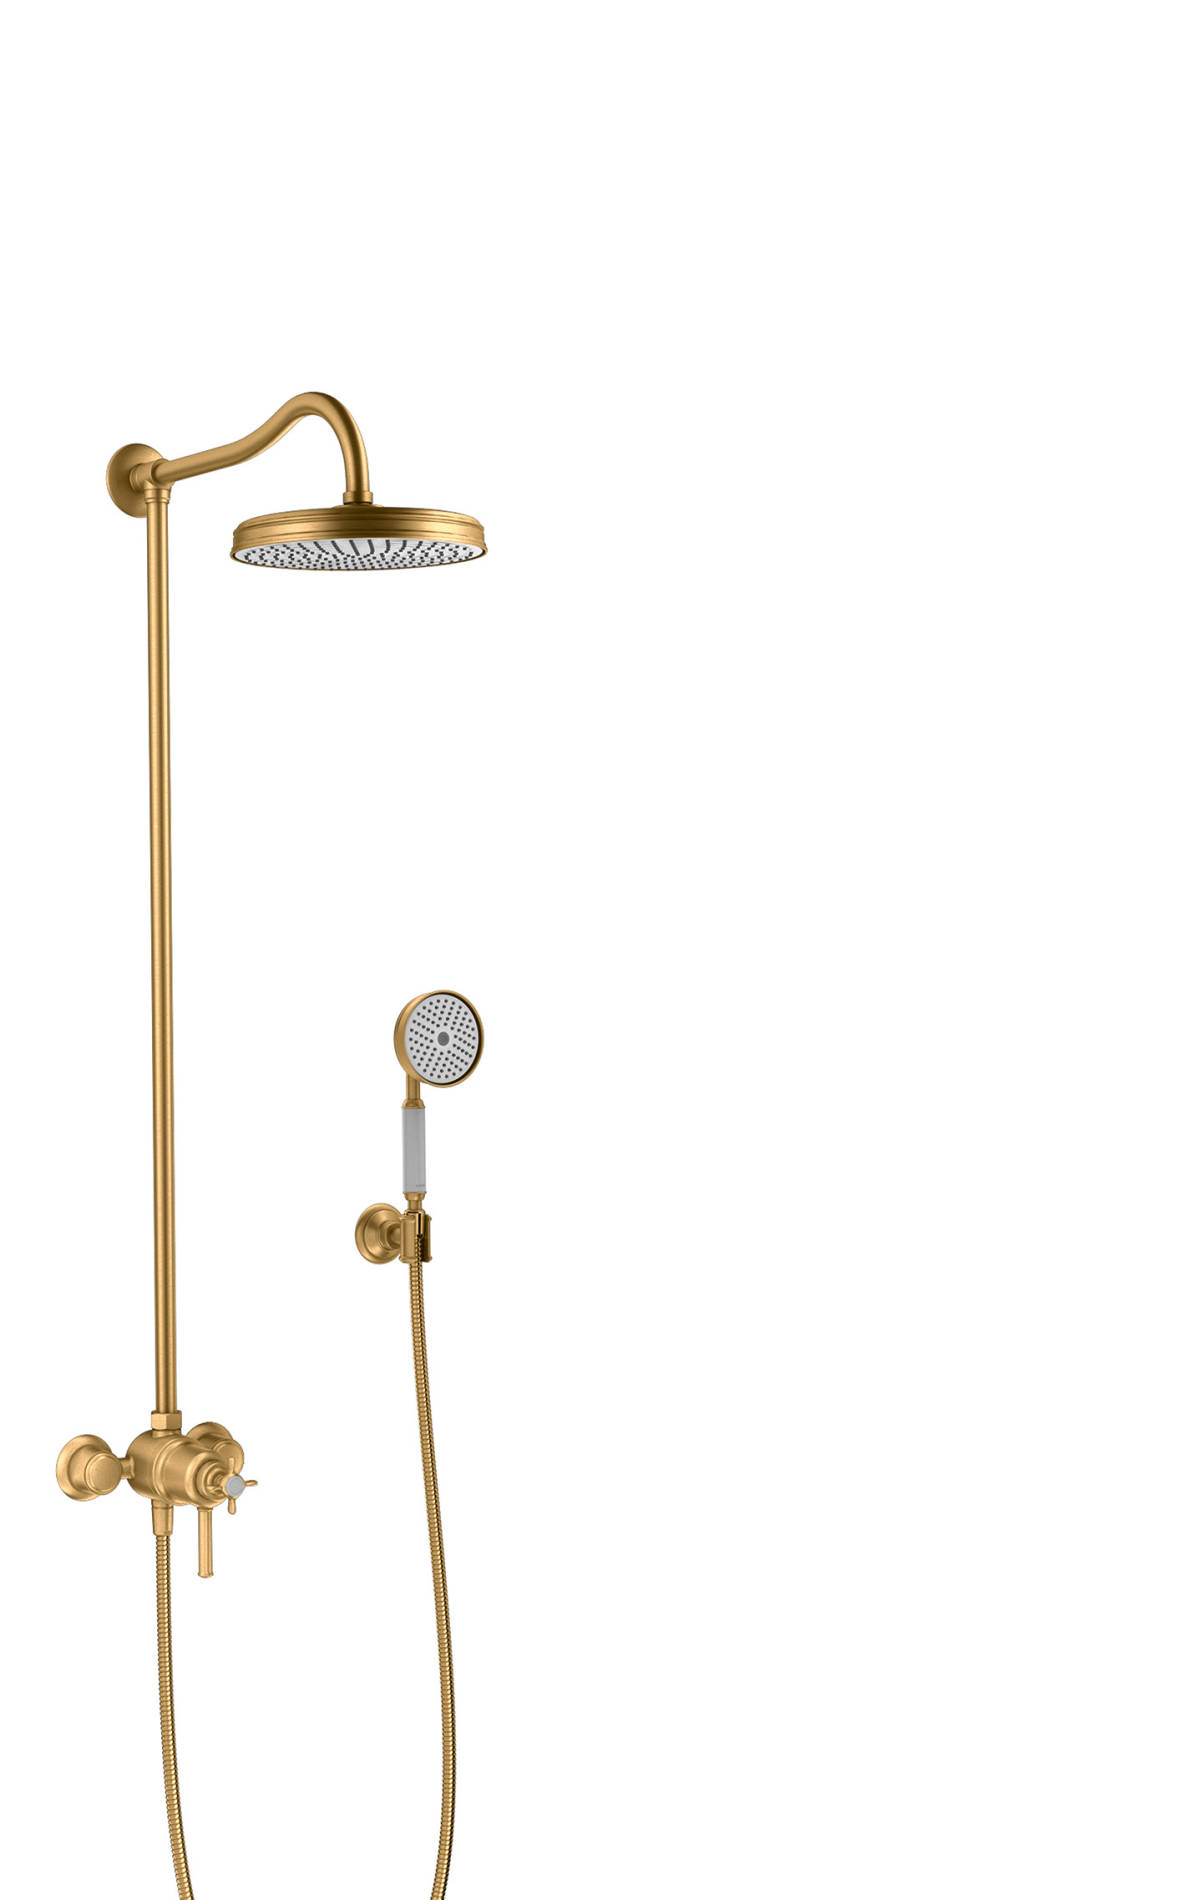 Showerpipe with thermostat and overhead shower 1jet, Brushed Brass, 16570950